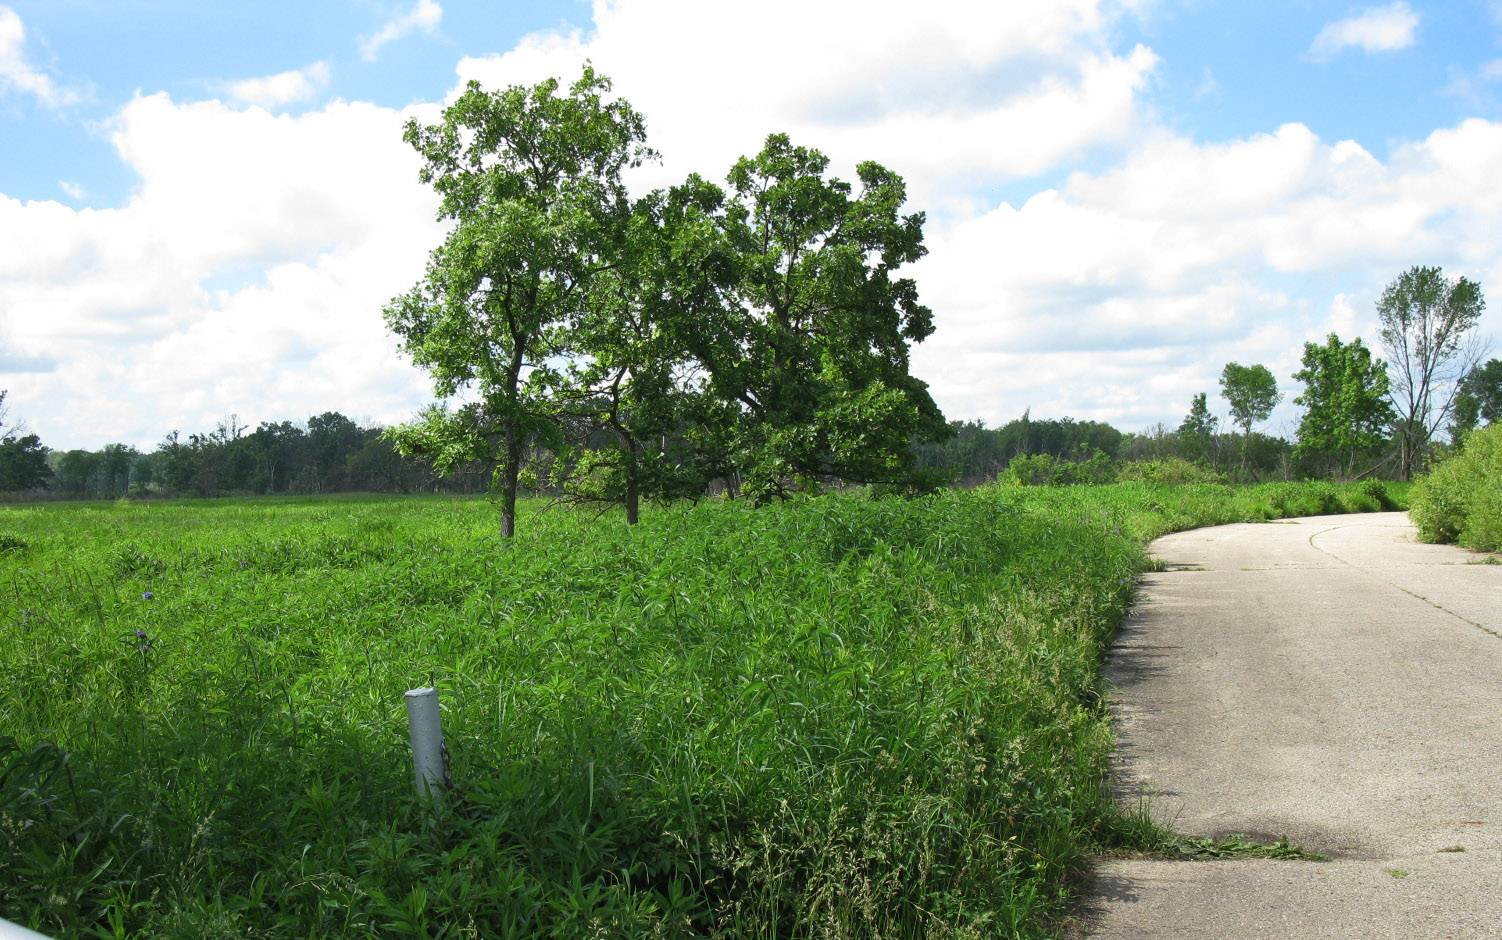 A crumbling road inside Lake County's Spring Bluff Forest Preserve will be removed and replaced by a trail for walkers, joggers and nature lovers by next summer.